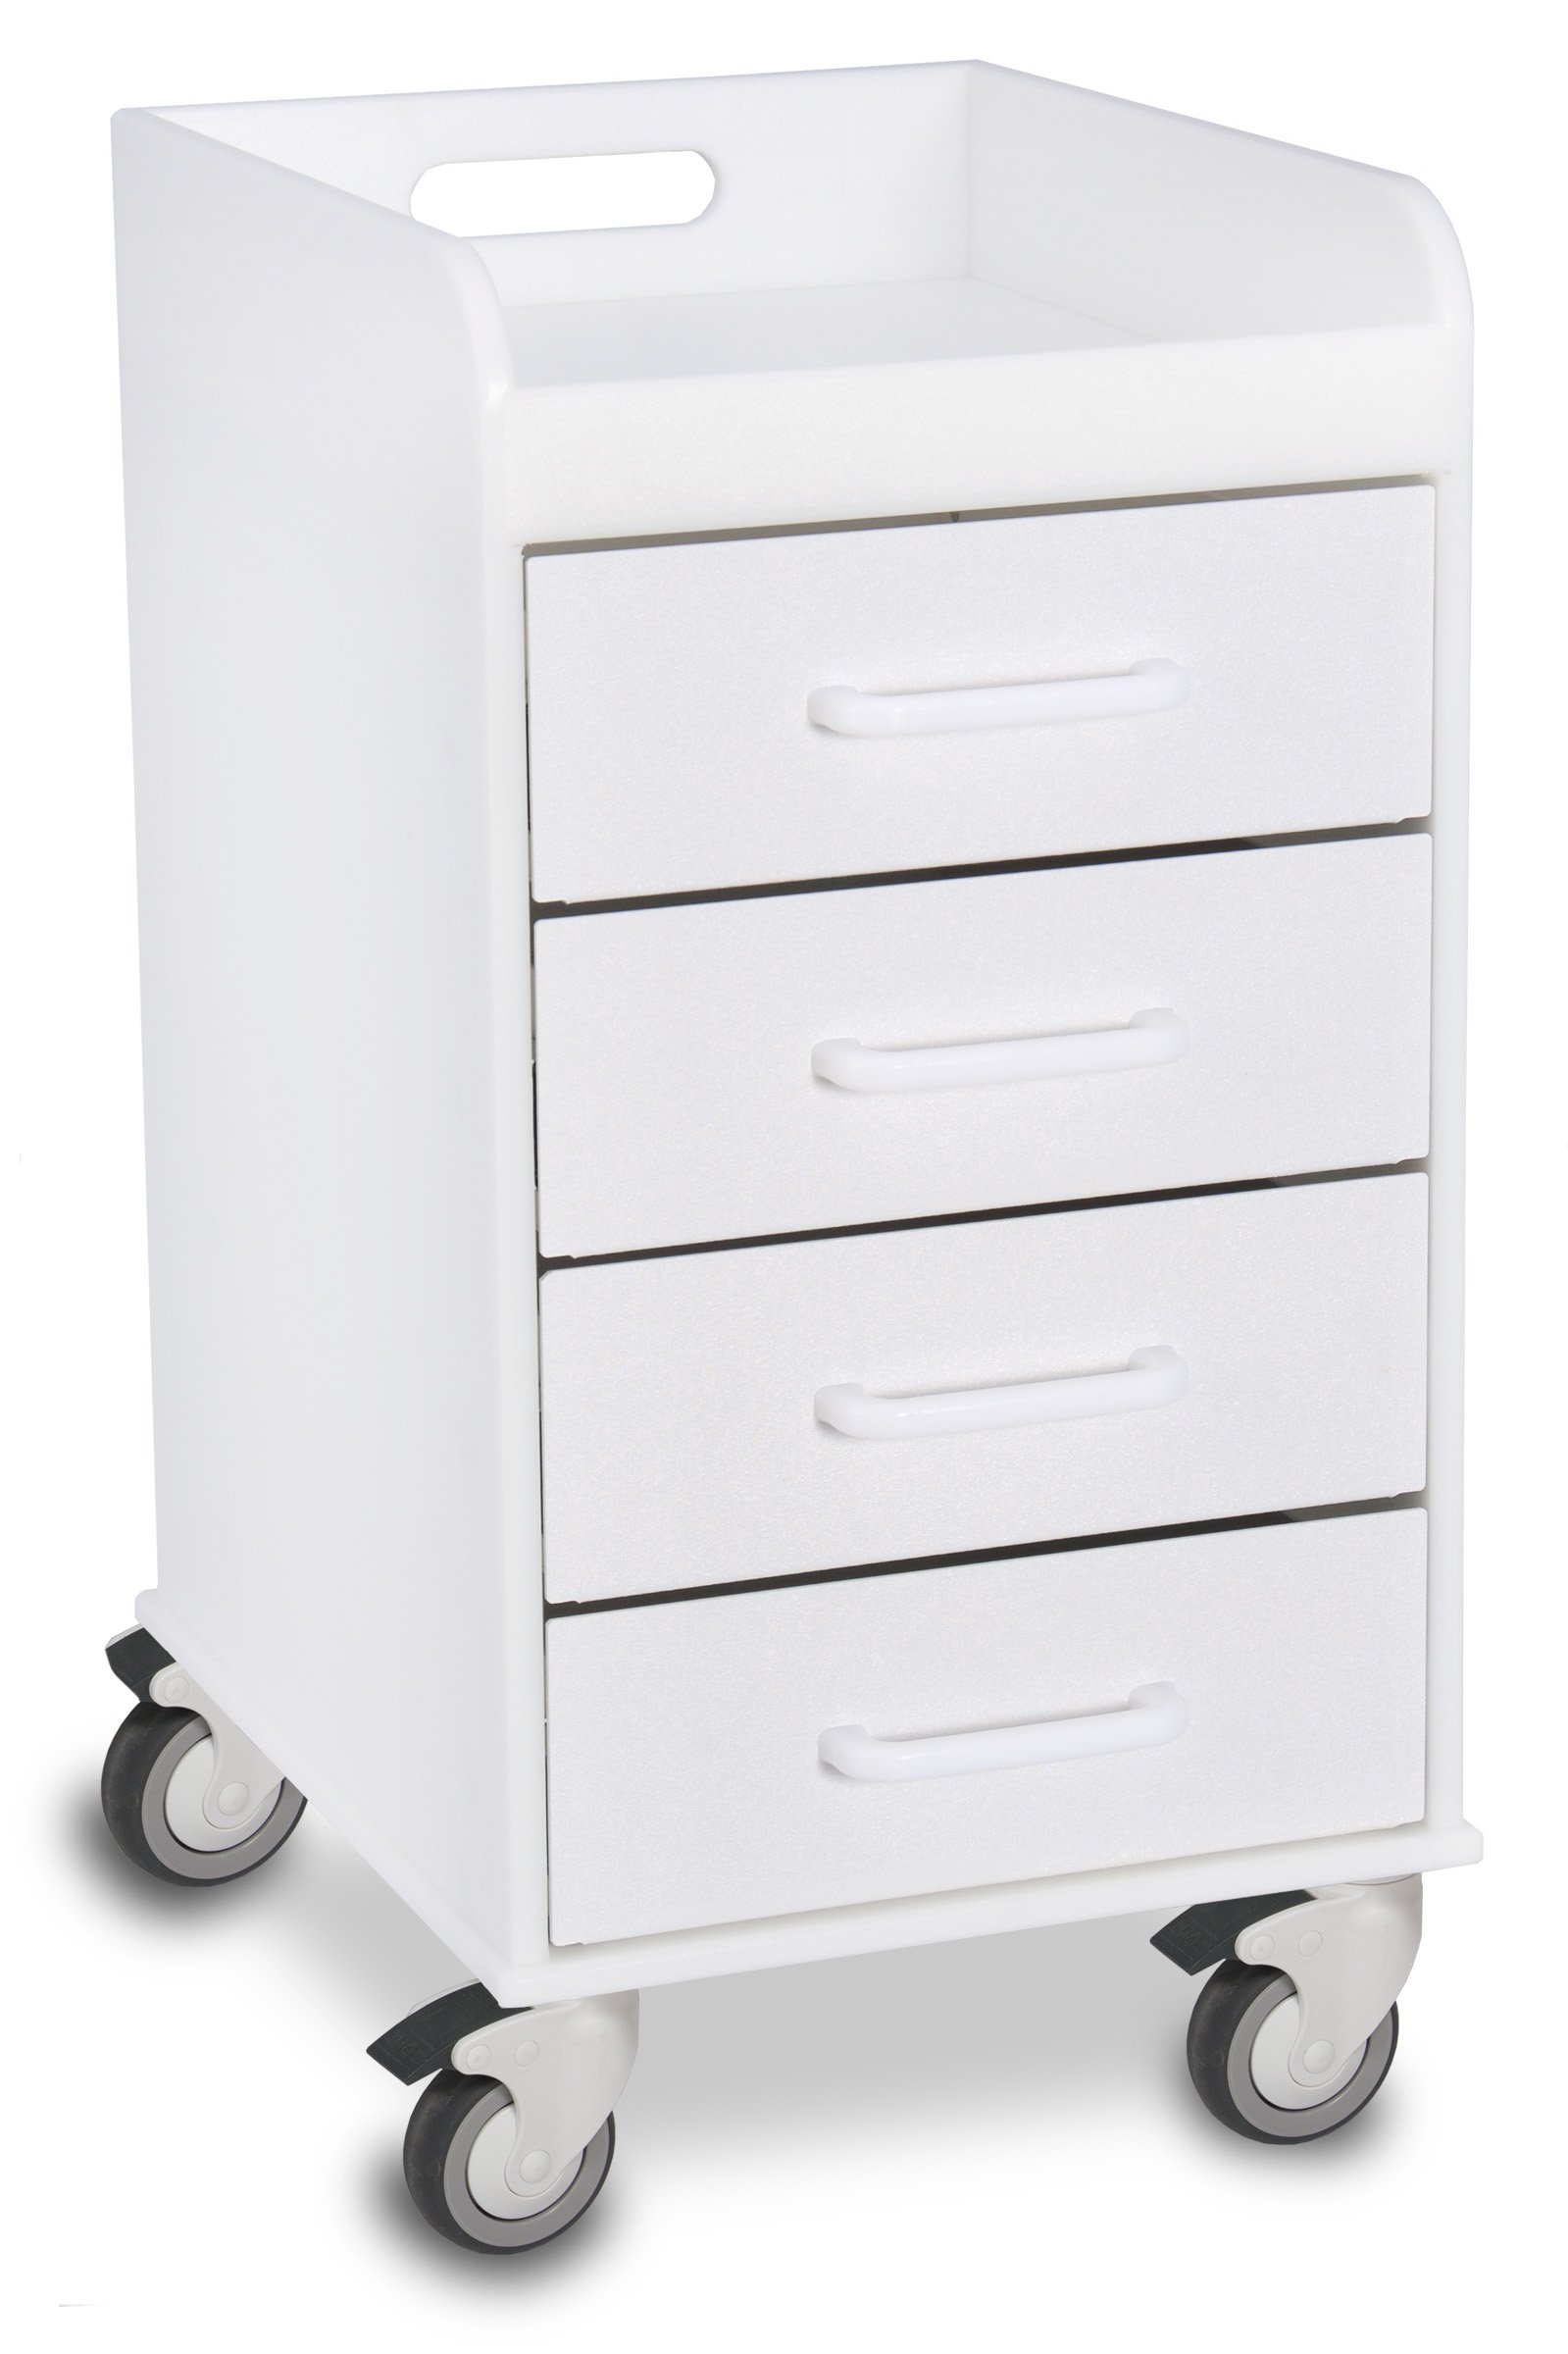 TrippNT 51032 Polyethylene Compact Locking Cart, 14'' Width x 27'' Height x 19'' Depth, 4 Drawers, White by TrippNT